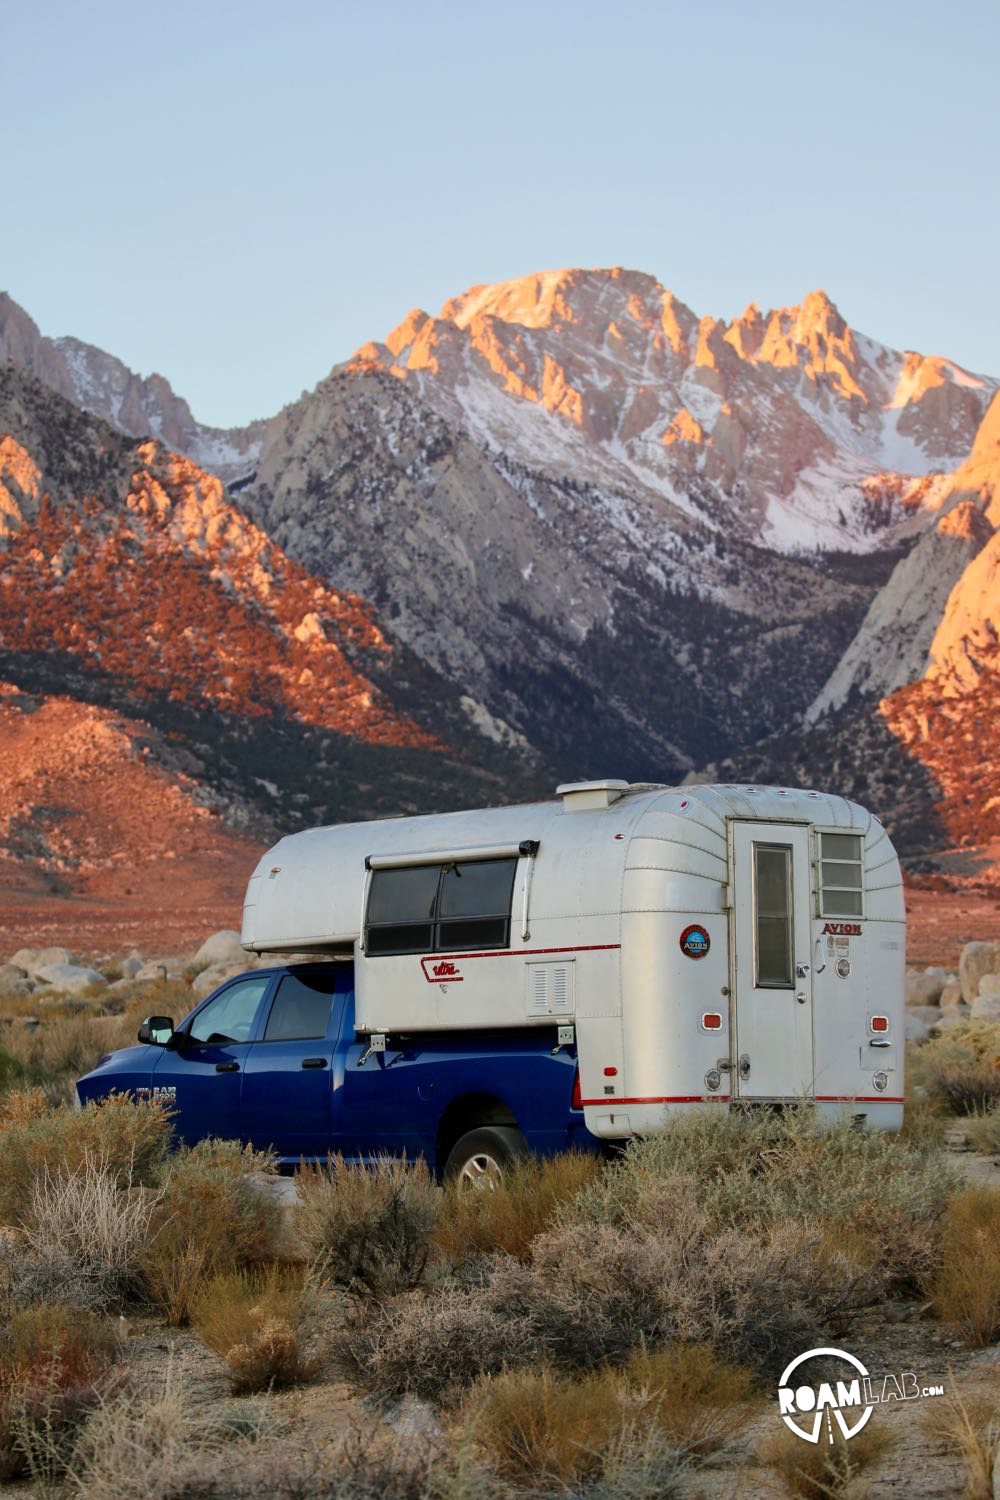 A Cotton Candy Sunrise, Overlanding On Movie Road, And Campfire Cooking In The Alabama Hills - Lone Pine, California